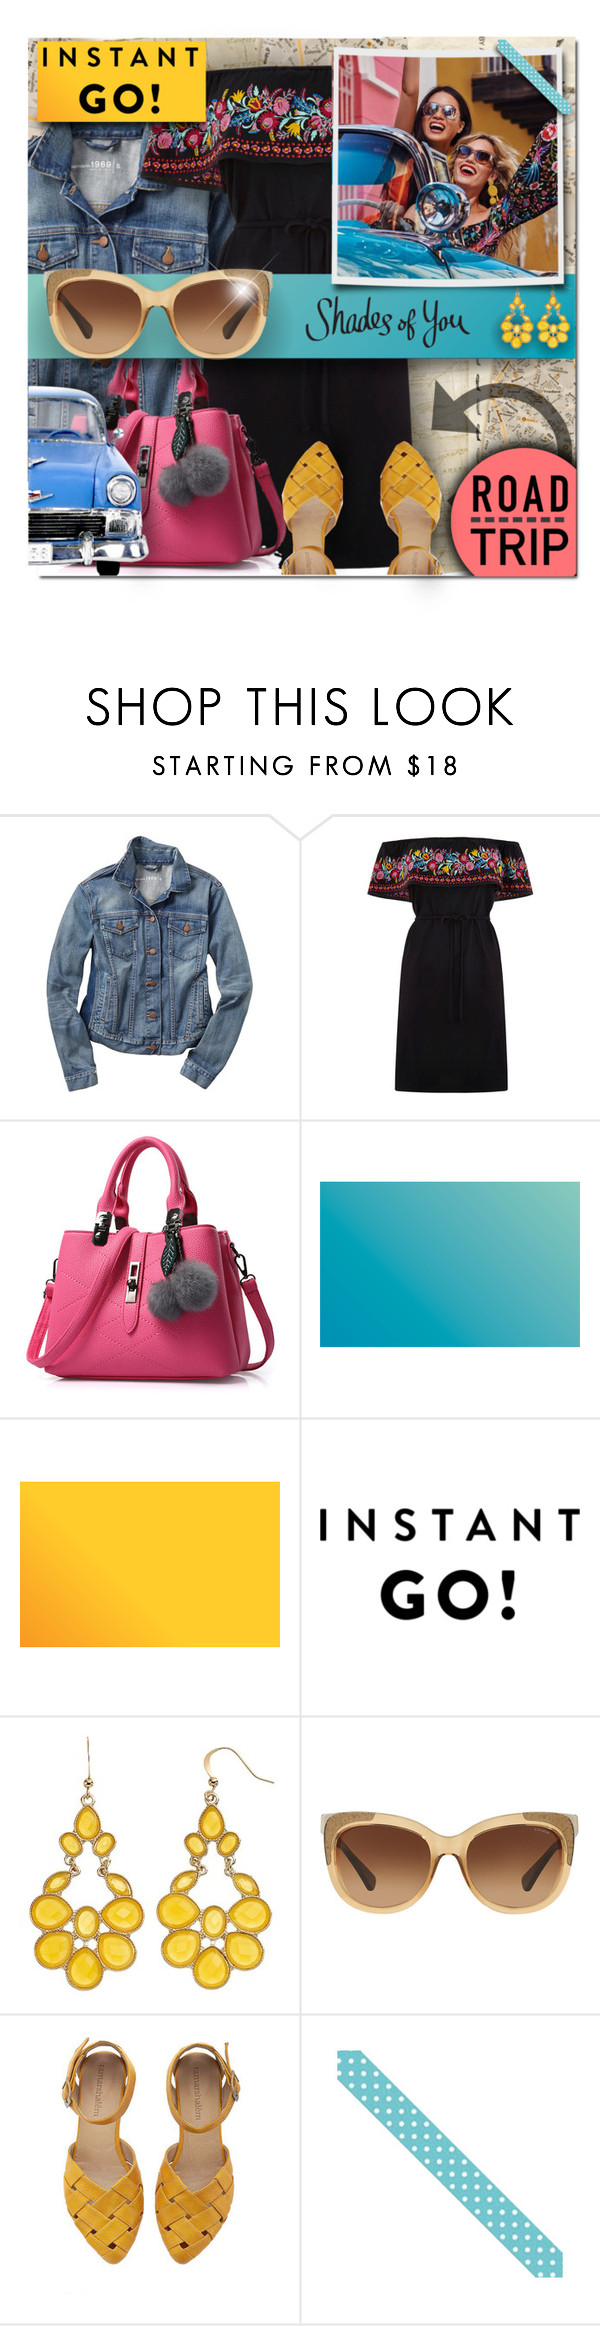 """Shades of You: Sunglass Hut Contest Entry"" by polly301 ❤ liked on Polyvore featuring Gap, Oasis, Coach, roadtrip, sunglasshut and shadesofyou"